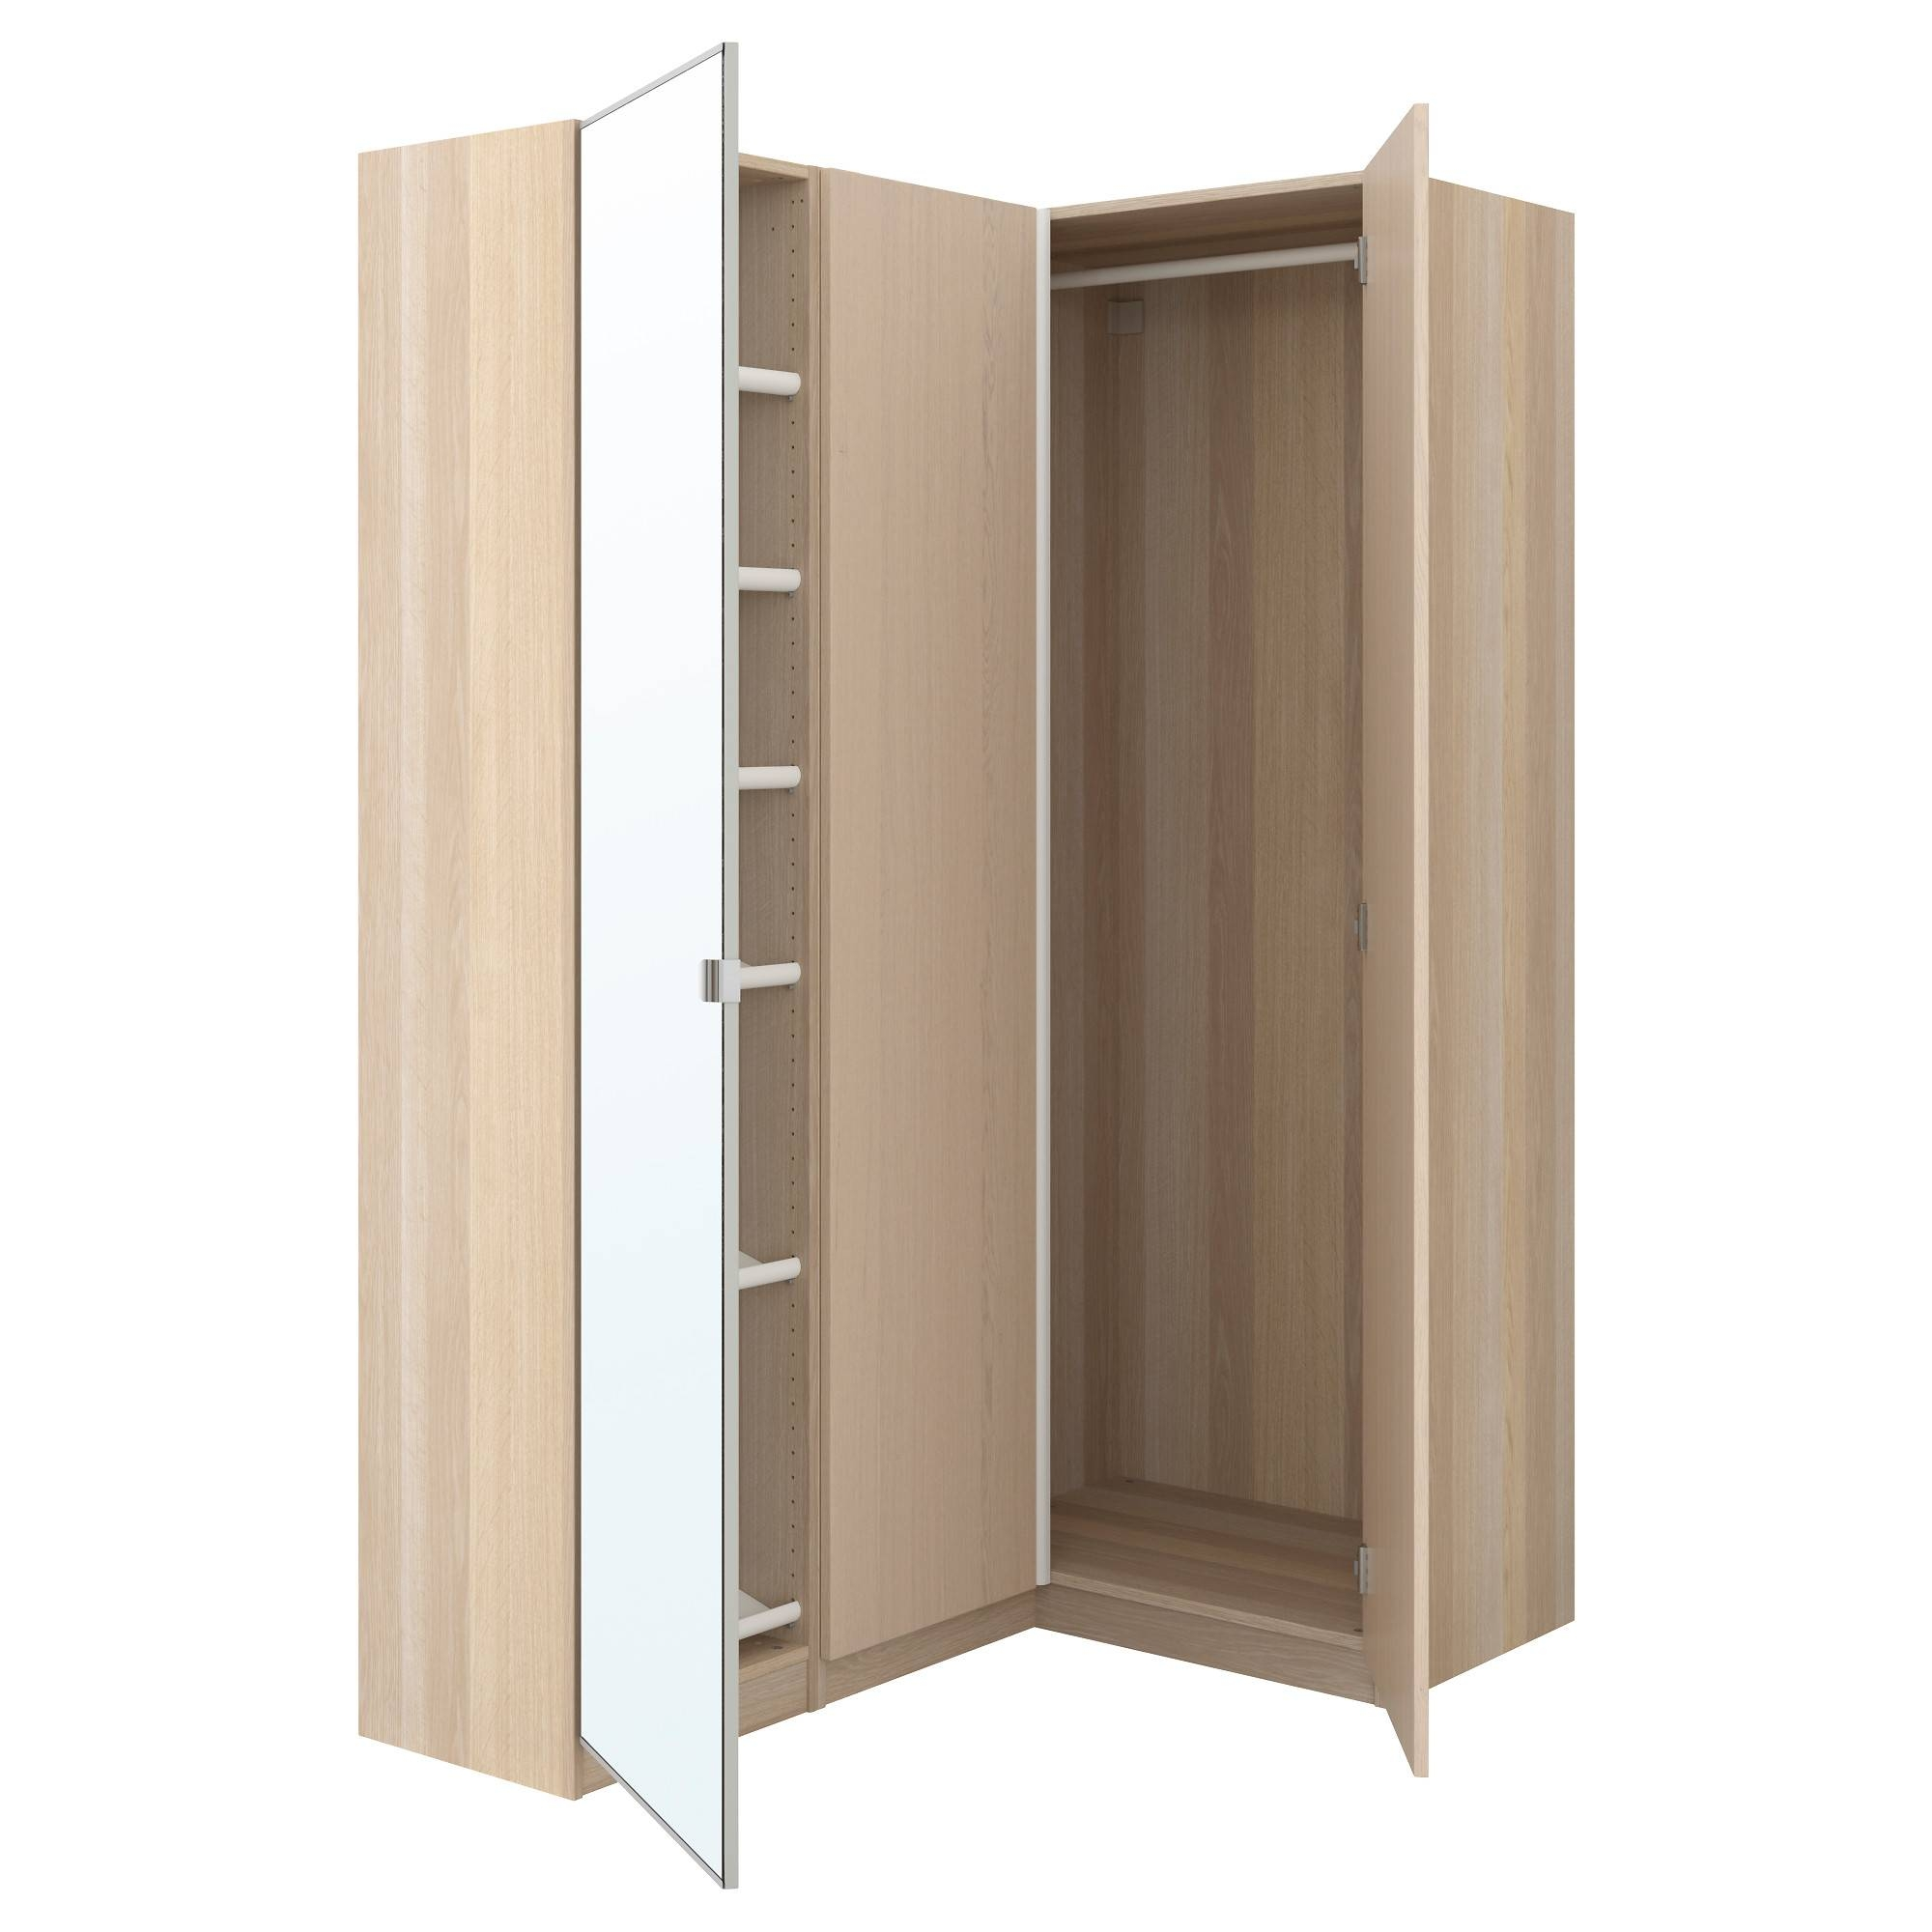 Pax Corner Wardrobe White Stained Oak Effect/nexus Vikedal 160 intended for Oak Corner Wardrobes (Image 11 of 15)